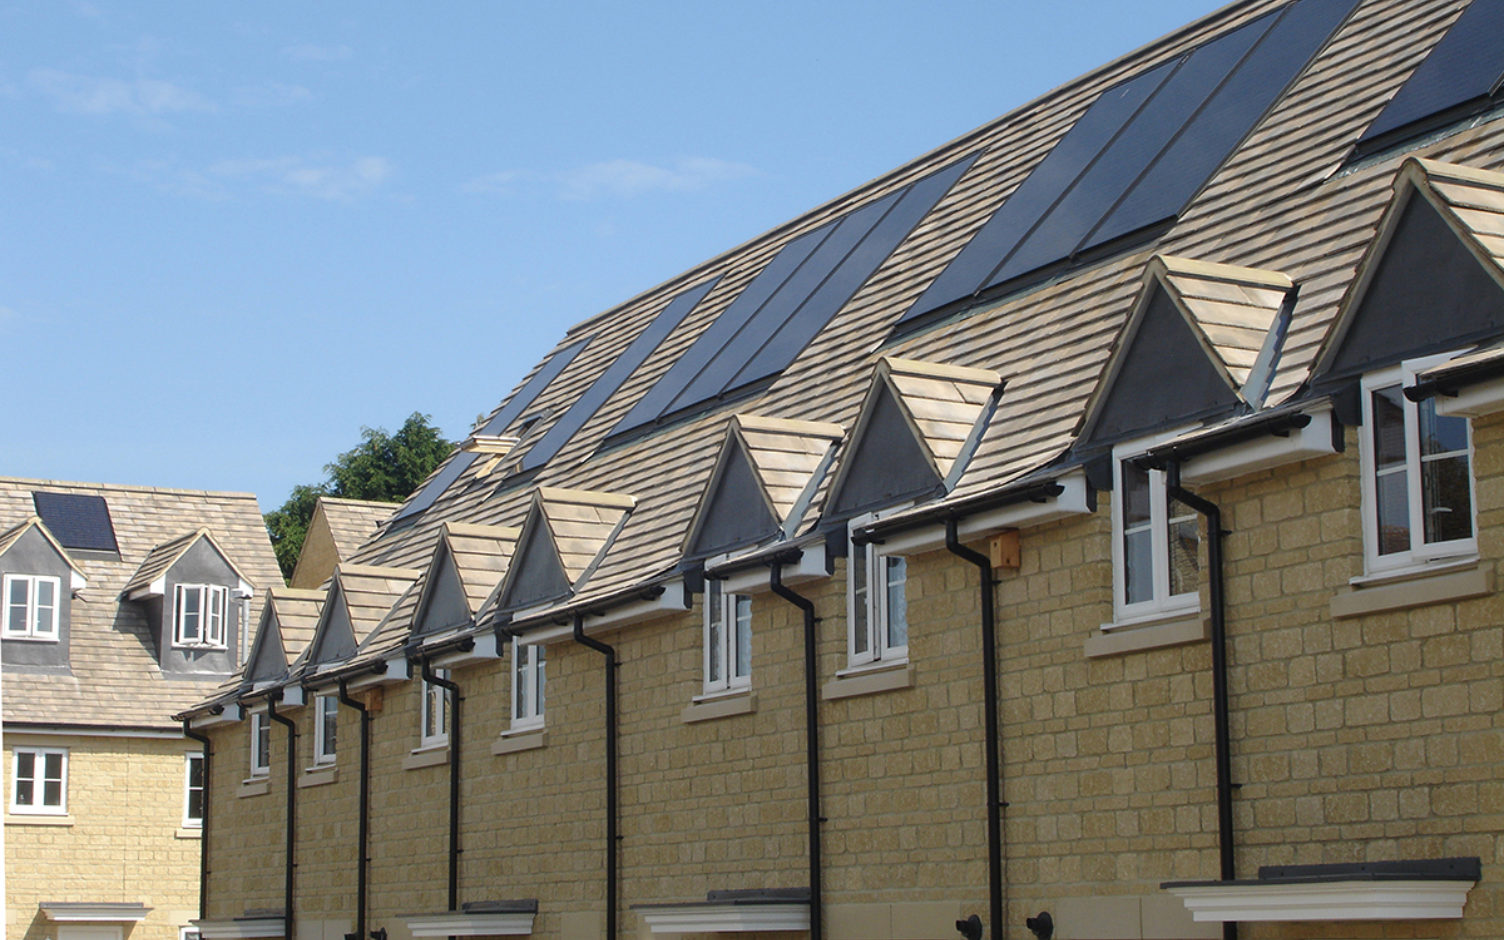 More than just FiT cuts to blame for council solar strategy fall out